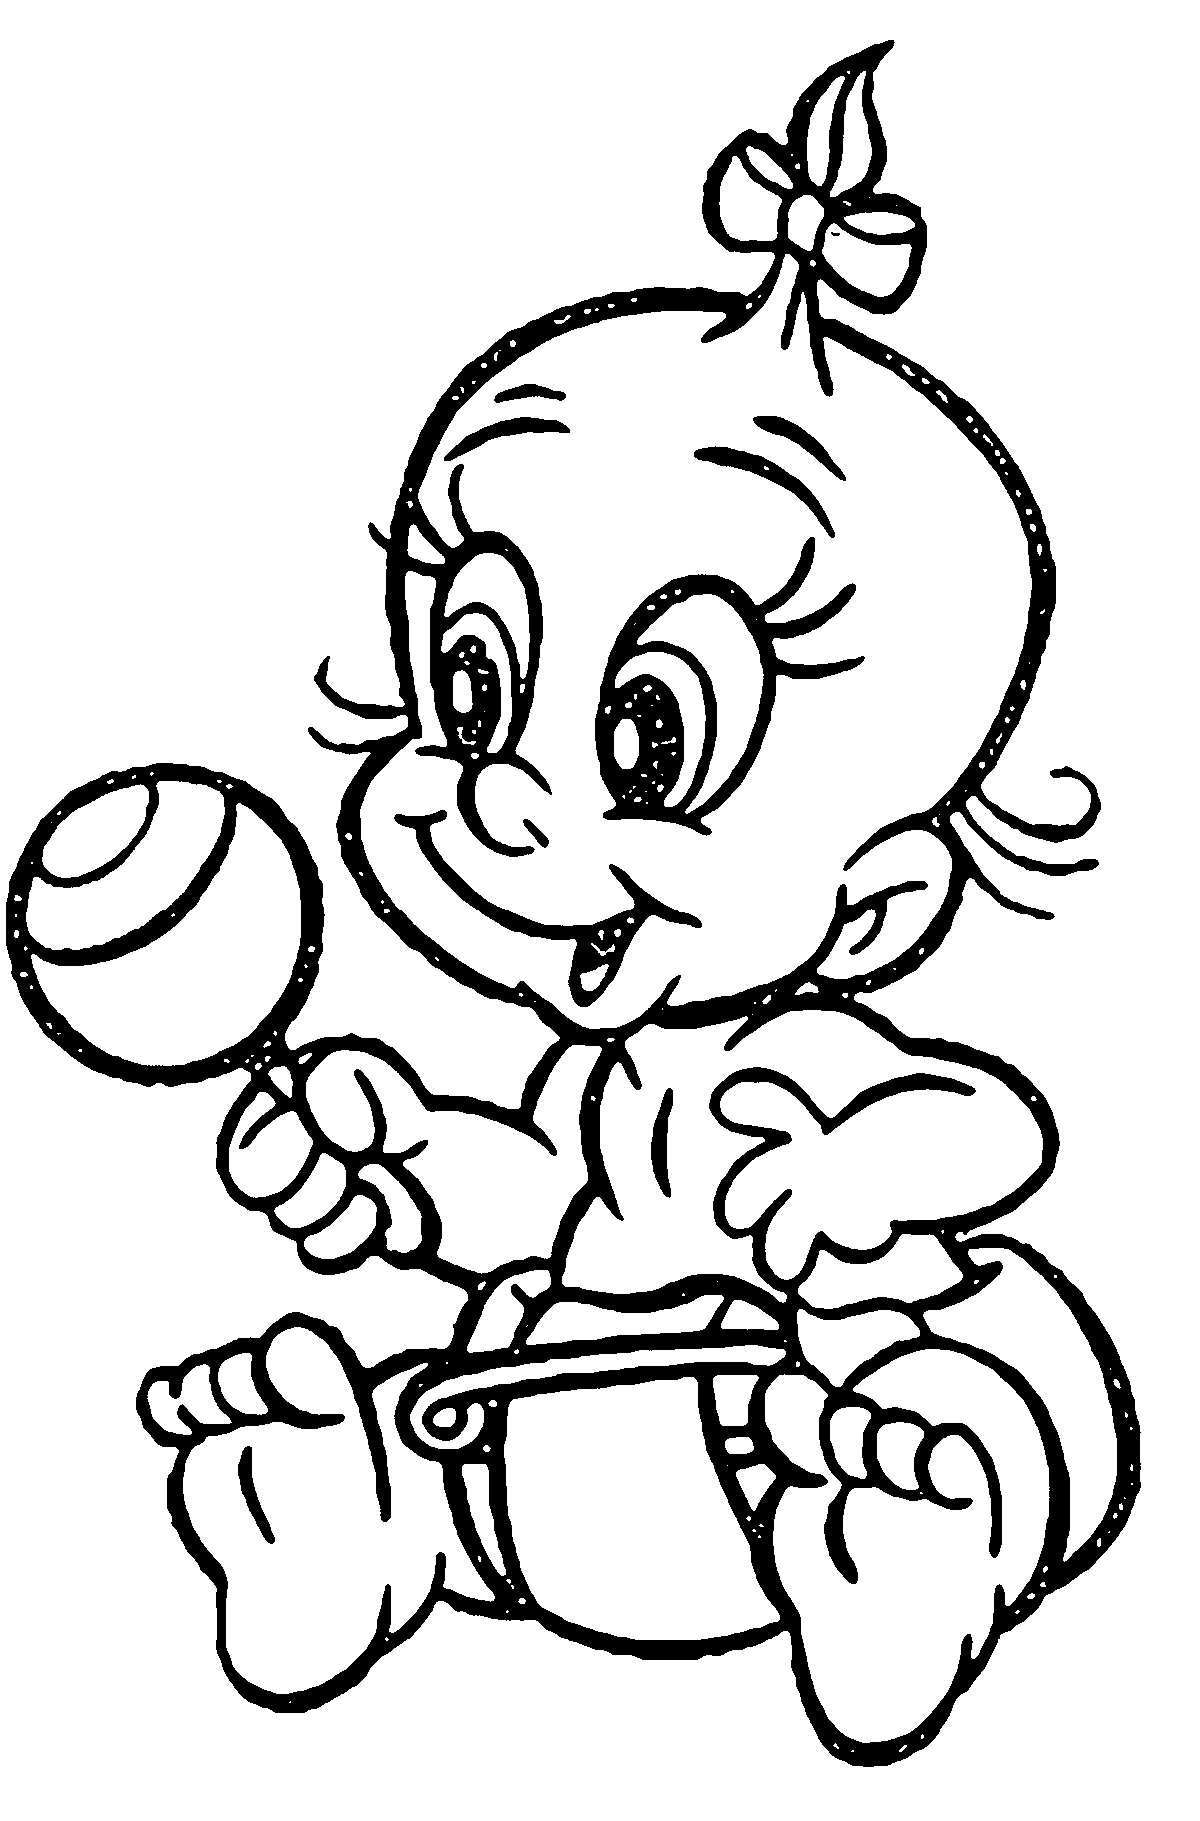 baby-alive-coloring-pages-4.